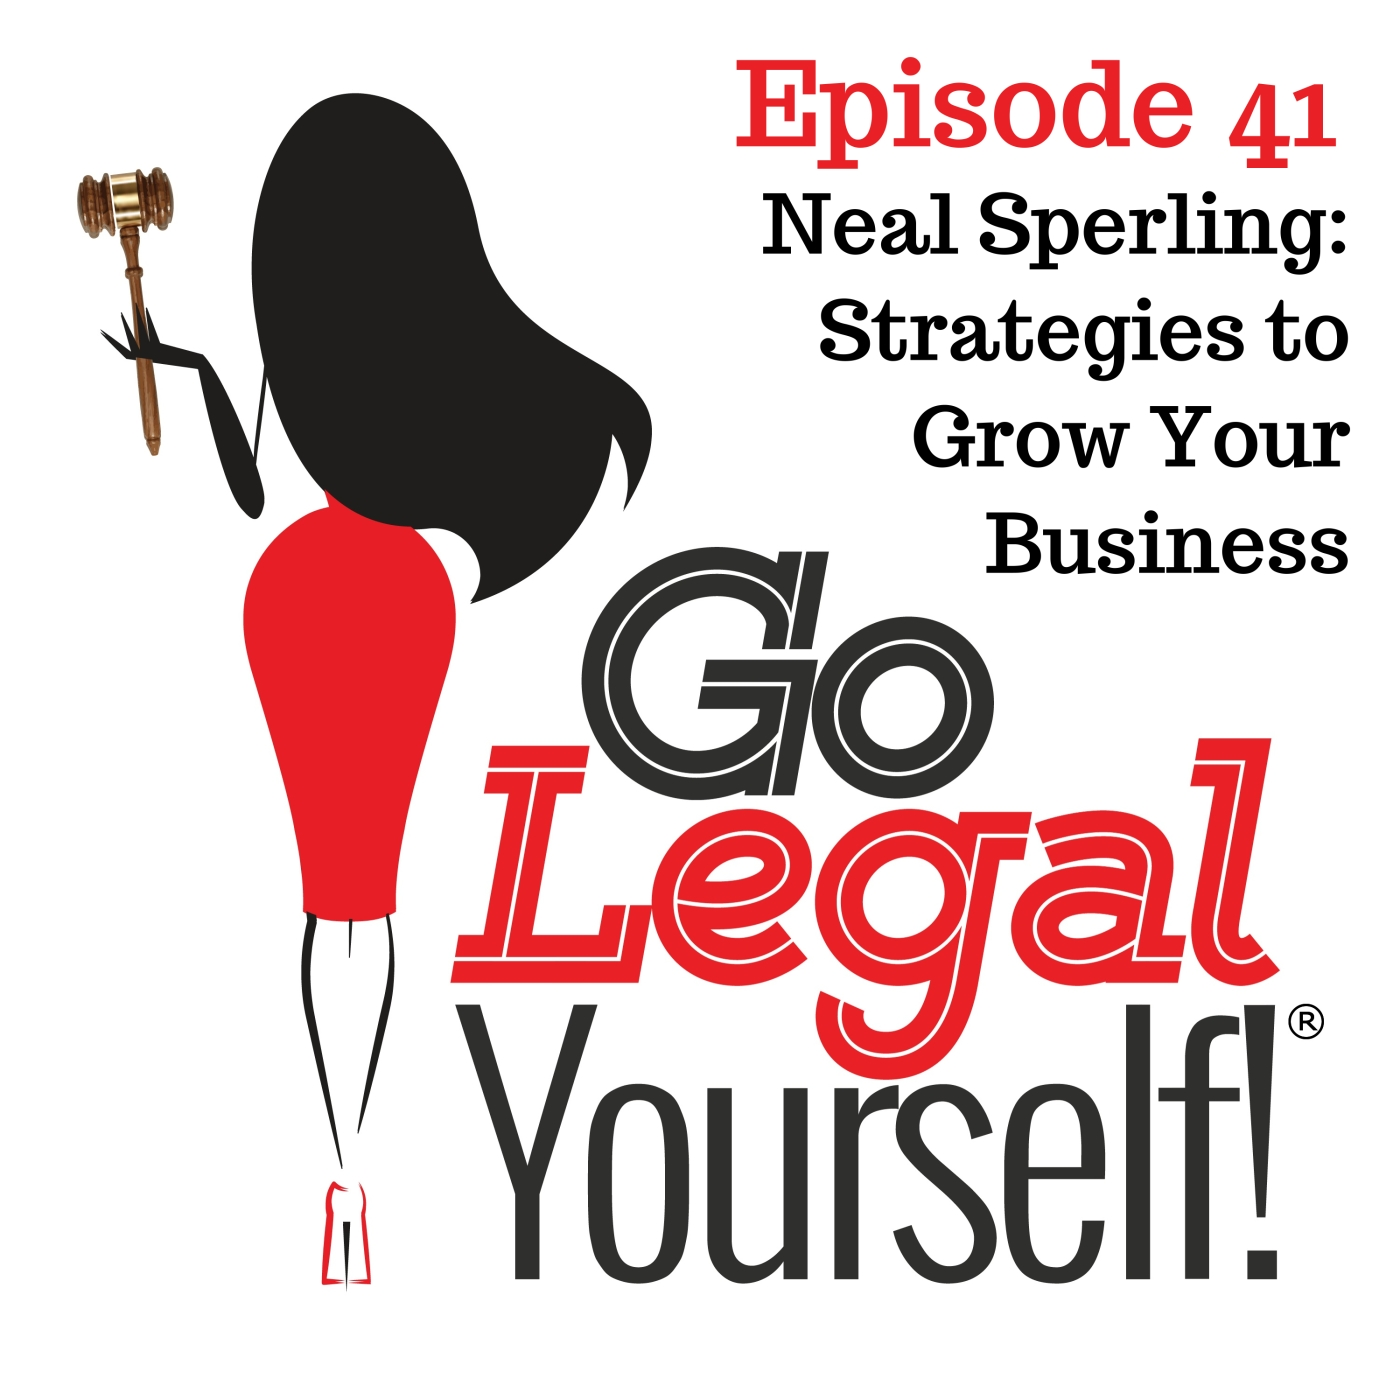 Ep. 41 Neal Sperling: Strategies to Grow Your Business